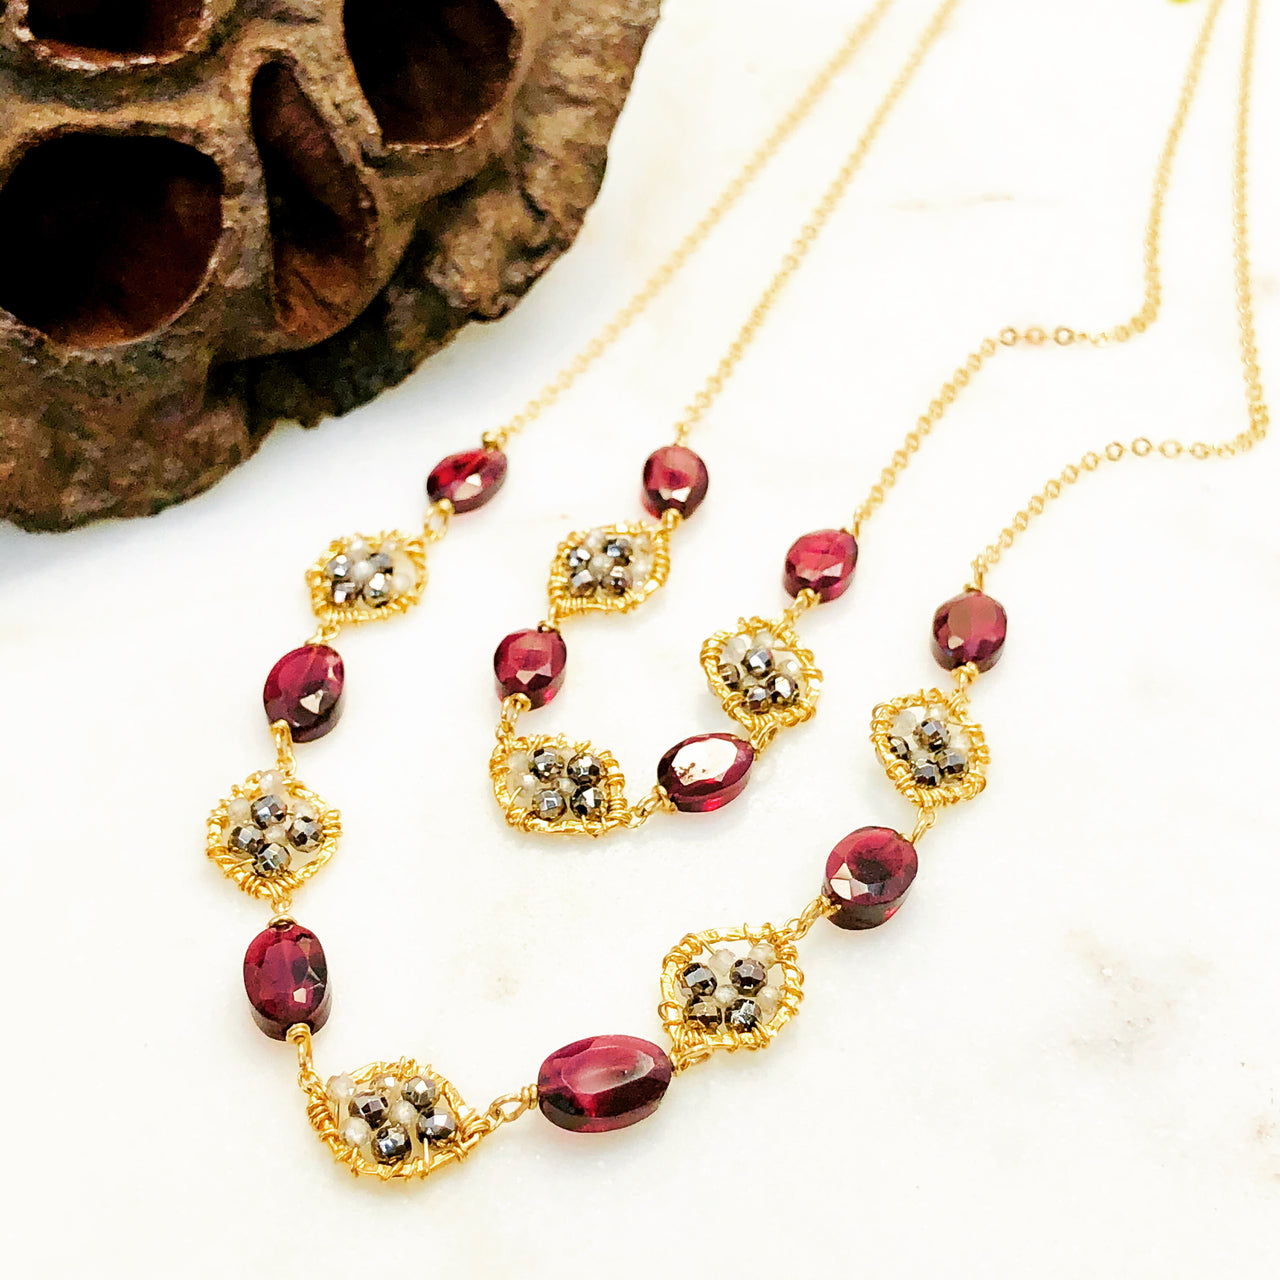 Gold Filled Garnet, Zircon and Pyrite Necklace.